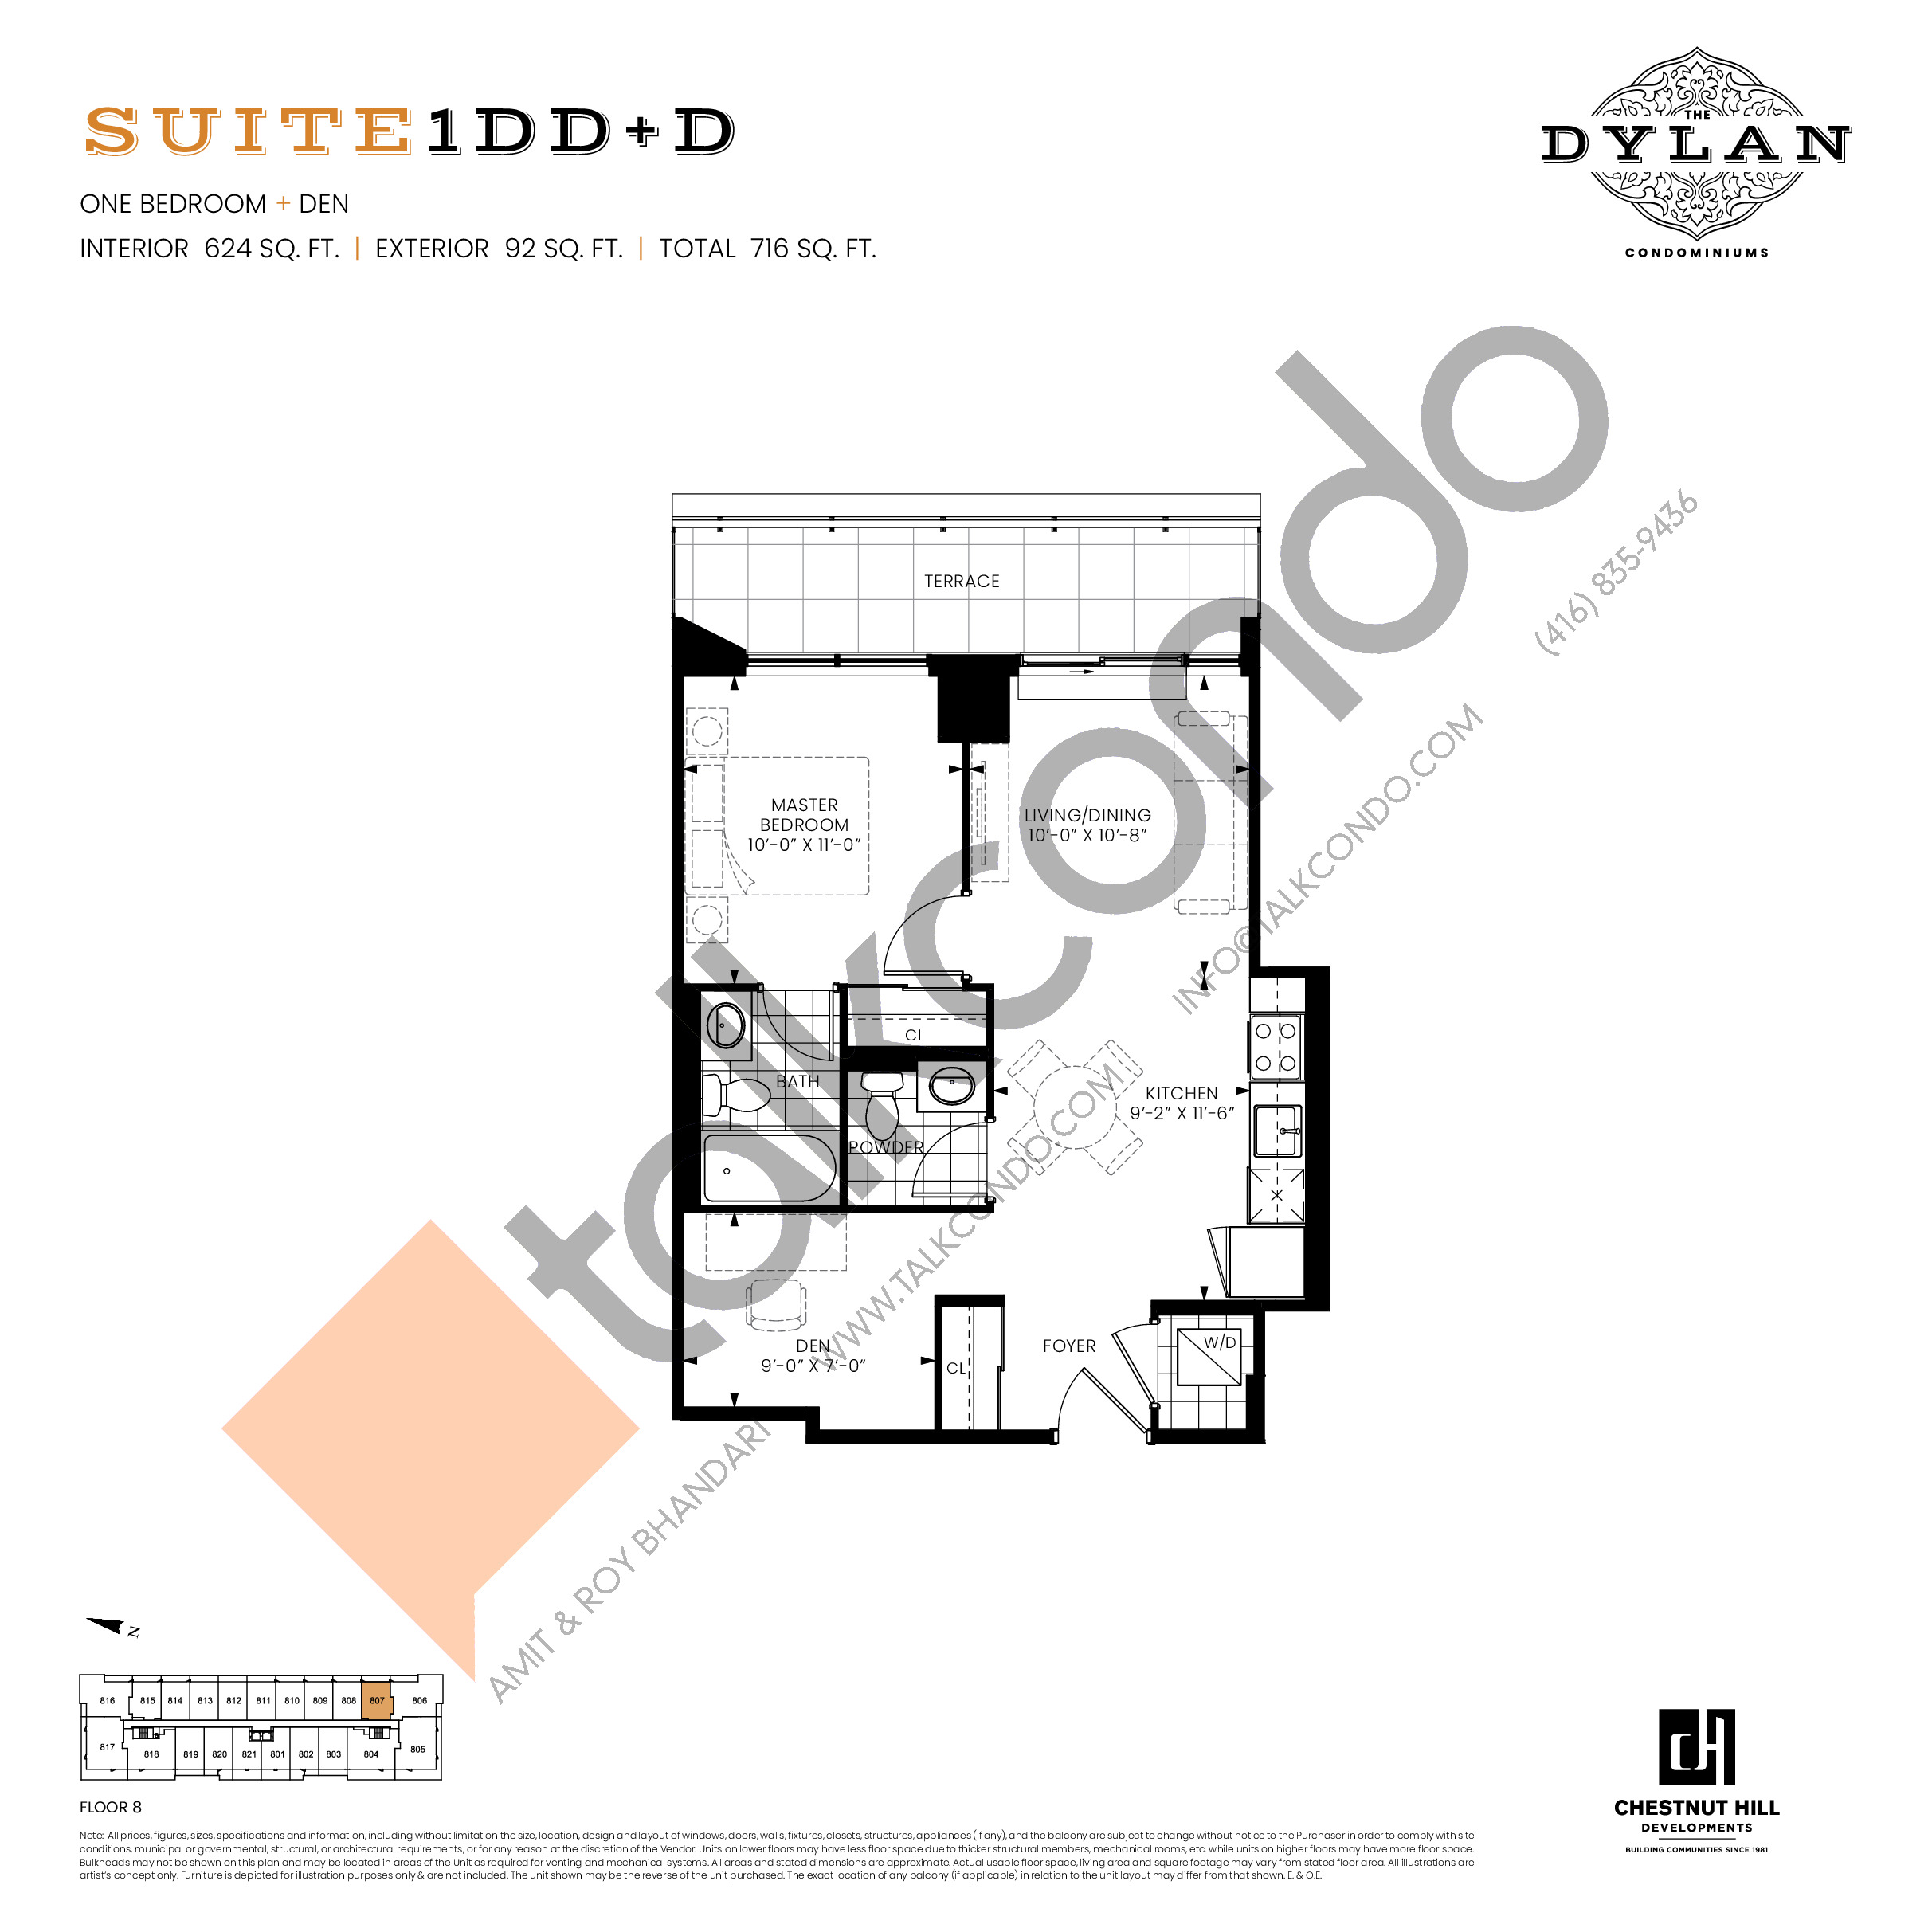 Suite 1DD+D Floor Plan at The Dylan Condos - 624 sq.ft